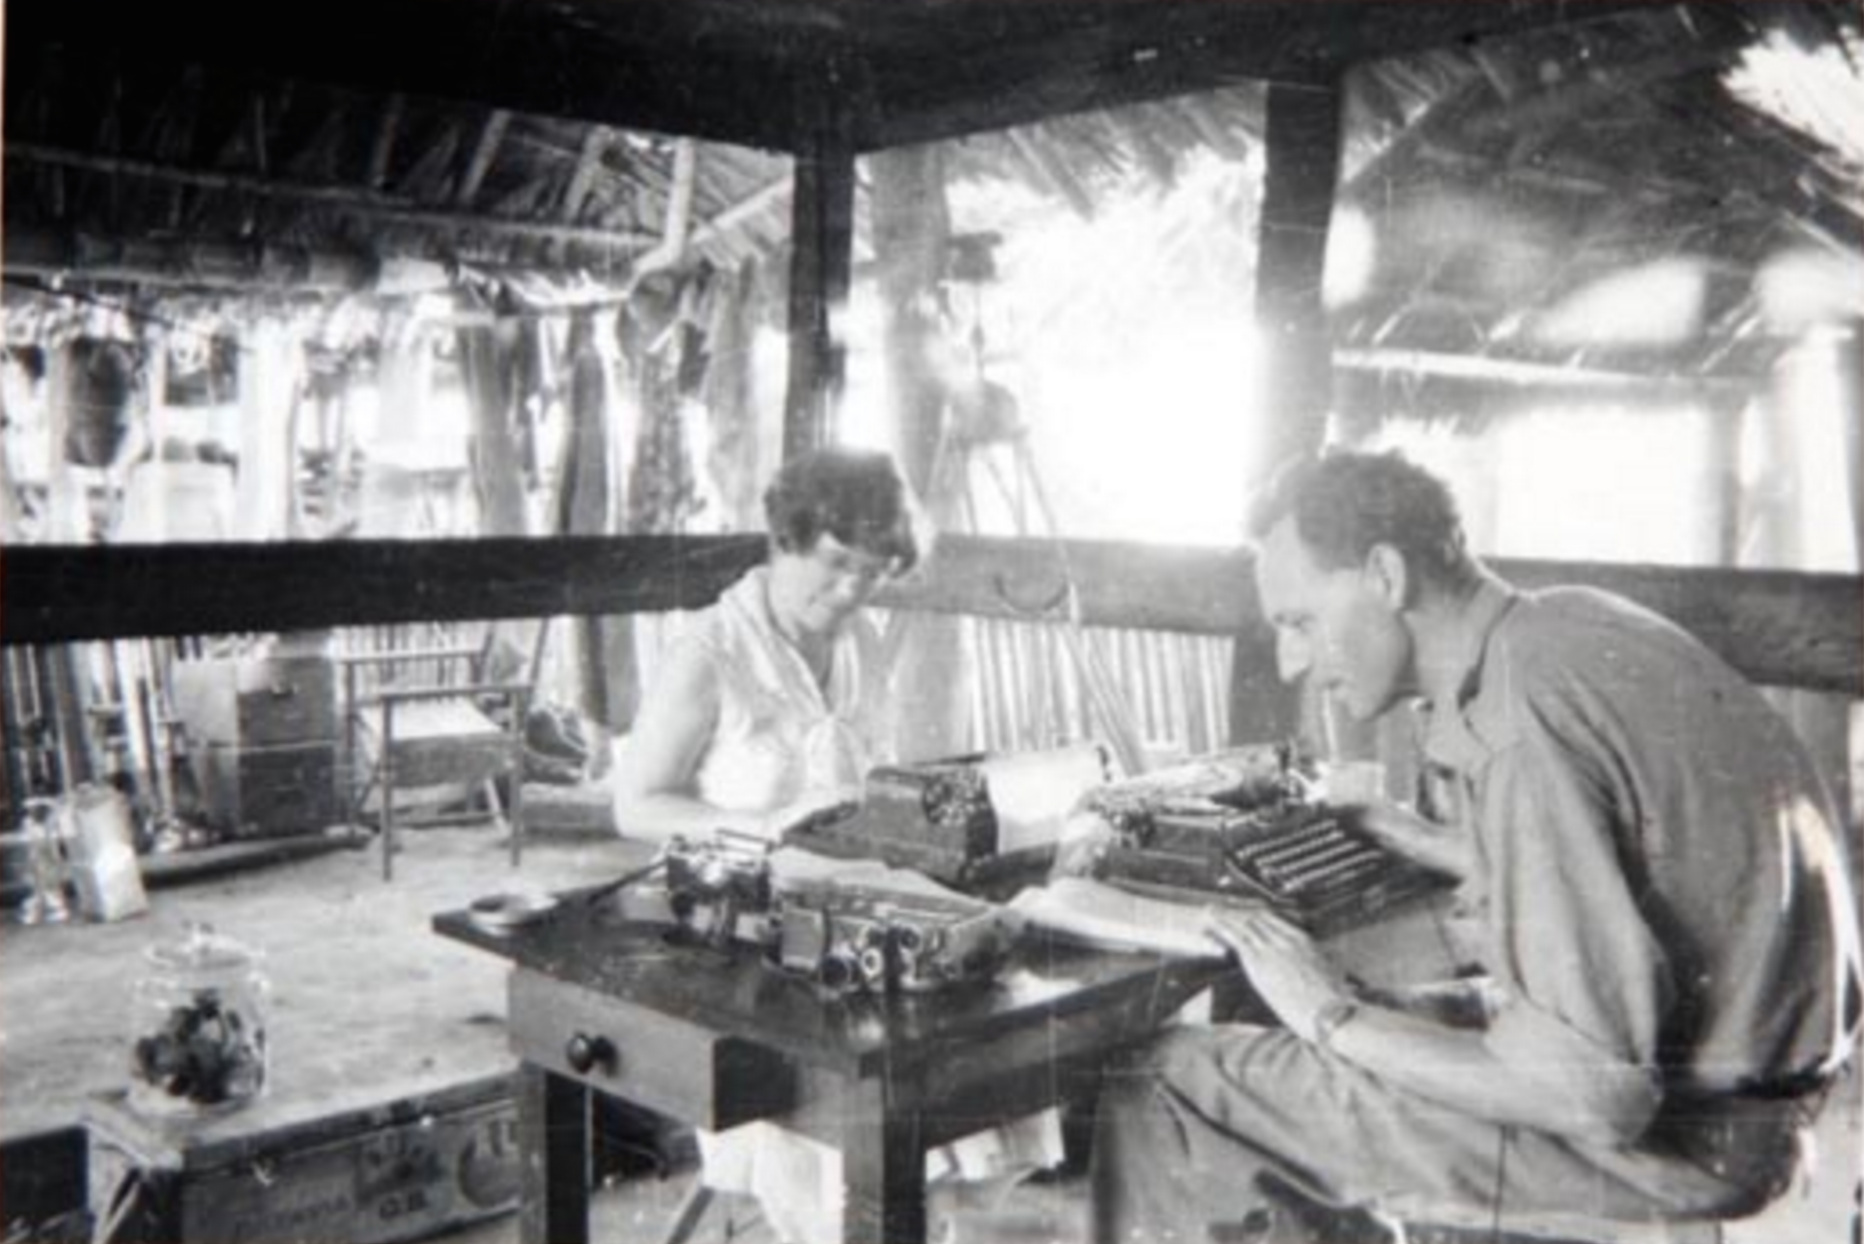 Margaret Mead i Gregory Bateson przy pracy, Tambunam, 1938. Manuscript Division, Library of Congress